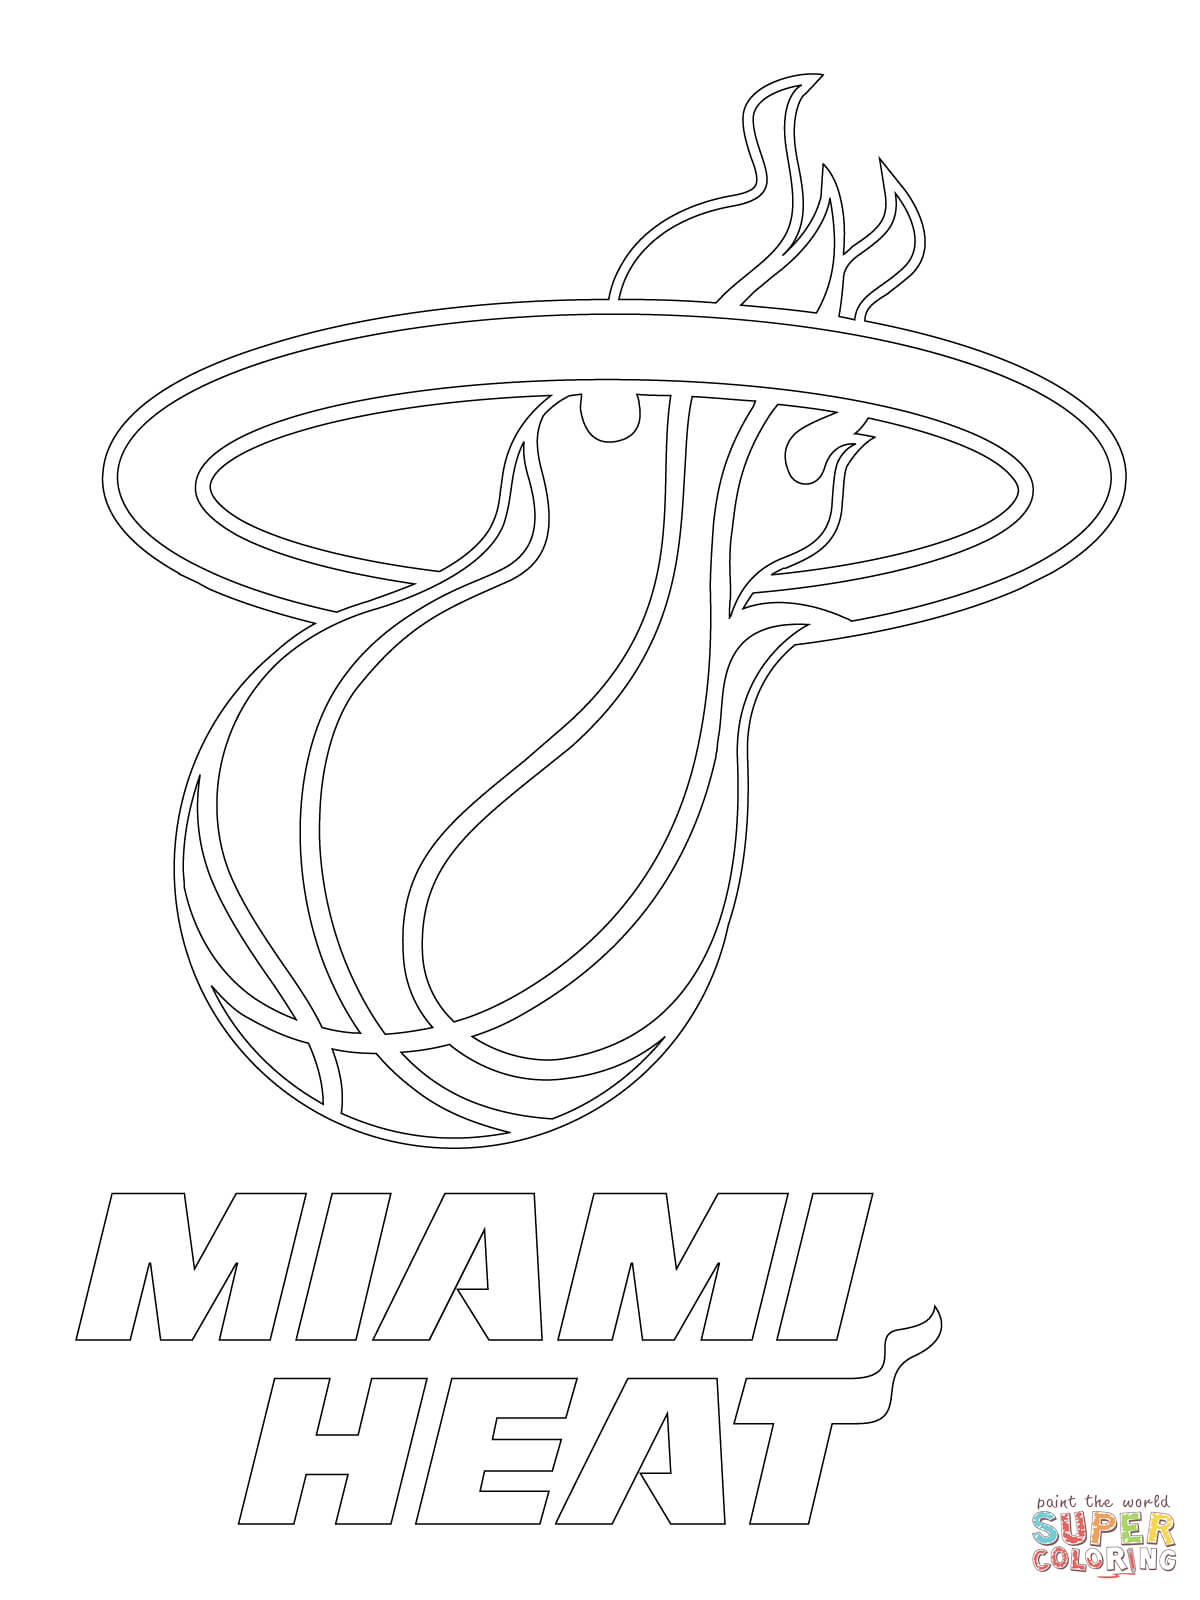 Nba Logo Drawing At Getdrawings Com Free For Personal Use Nba Logo